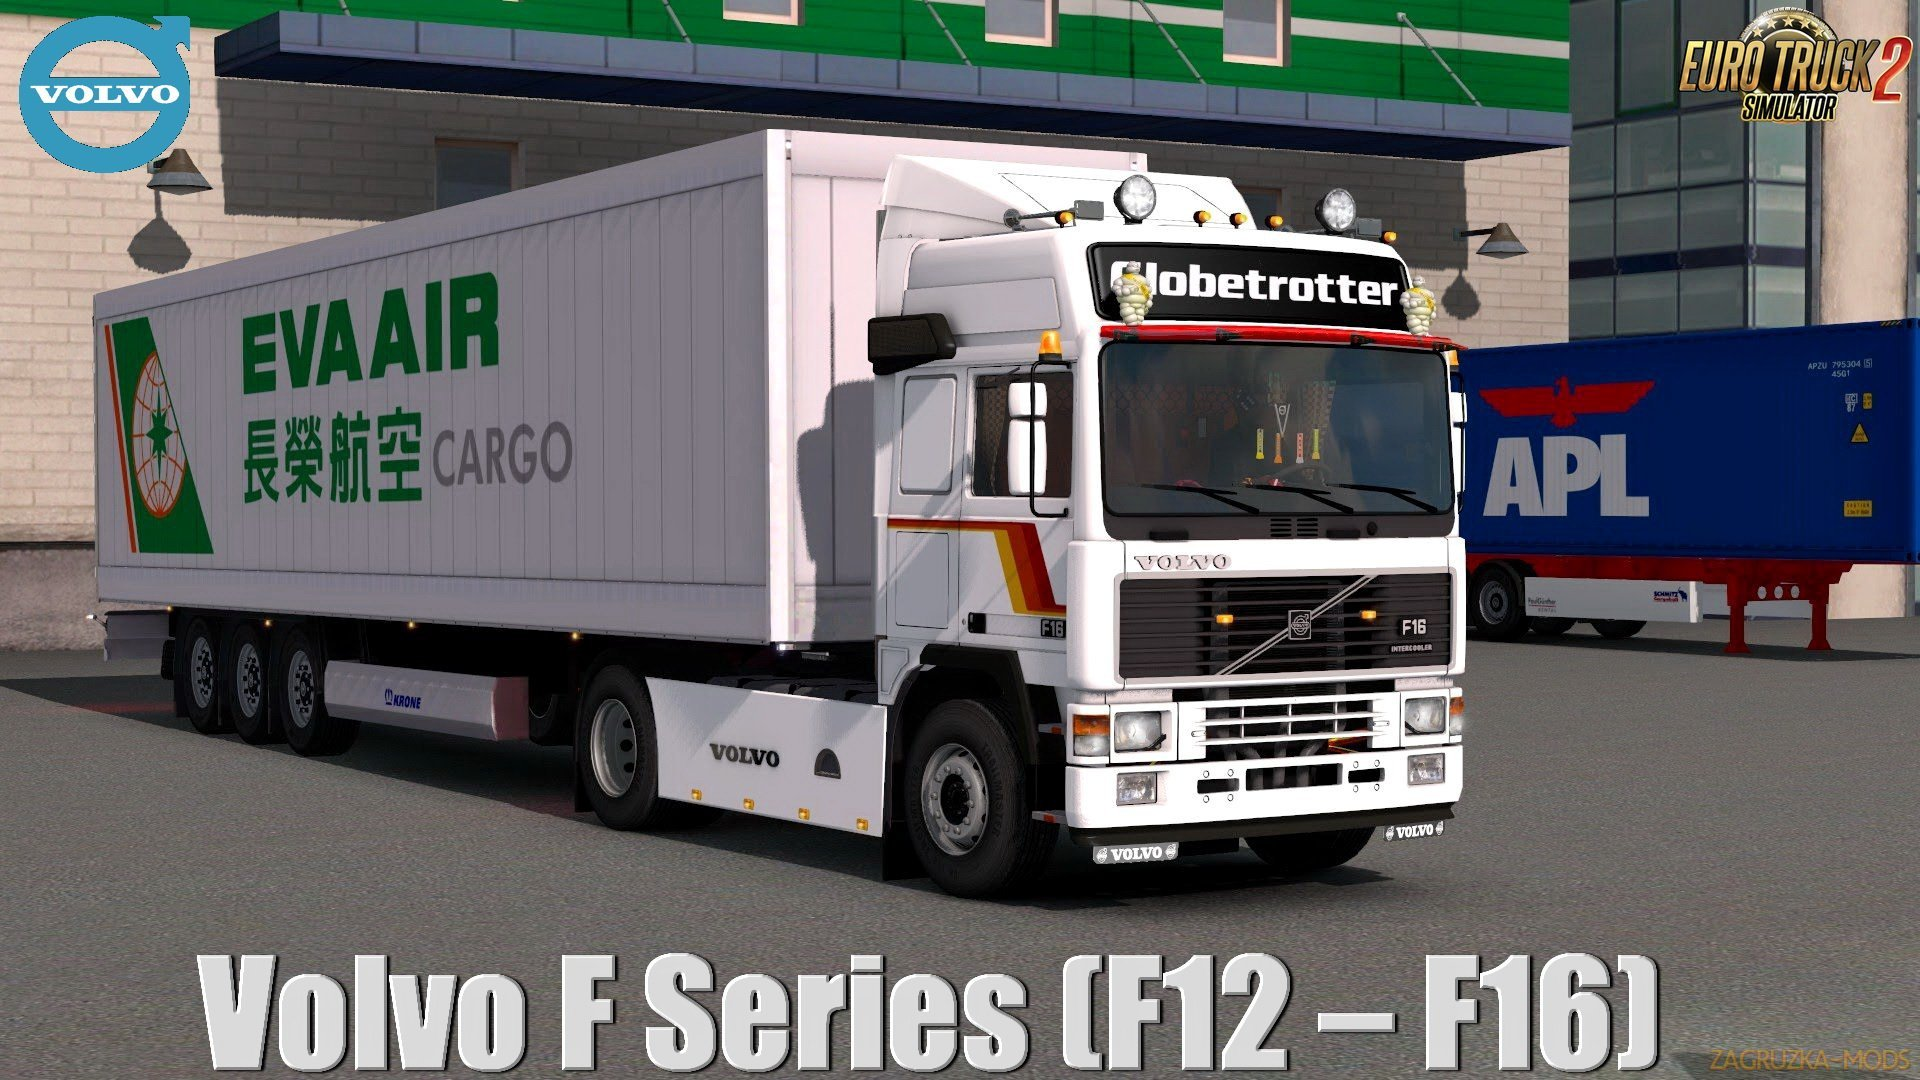 Volvo F-Series (F12 – F16) v2.1 (1.38.x) for ETS2